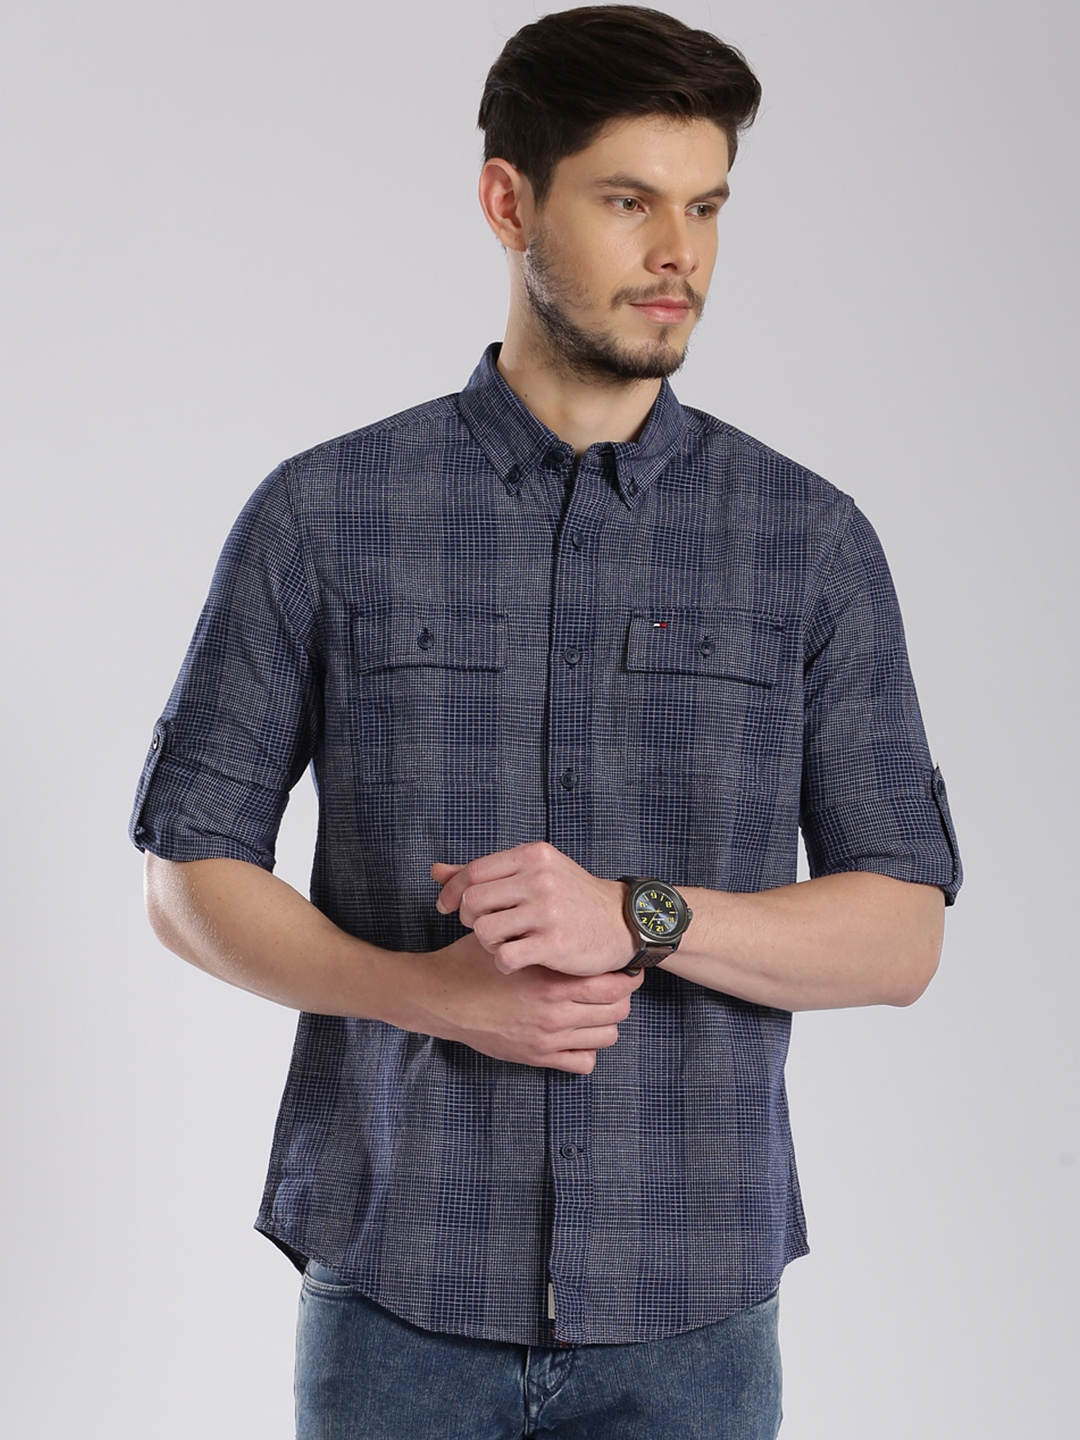 a5f6cab6 Buy Tommy Hilfiger Navy Checked Custom Fit Casual Shirt - Shirts for ...